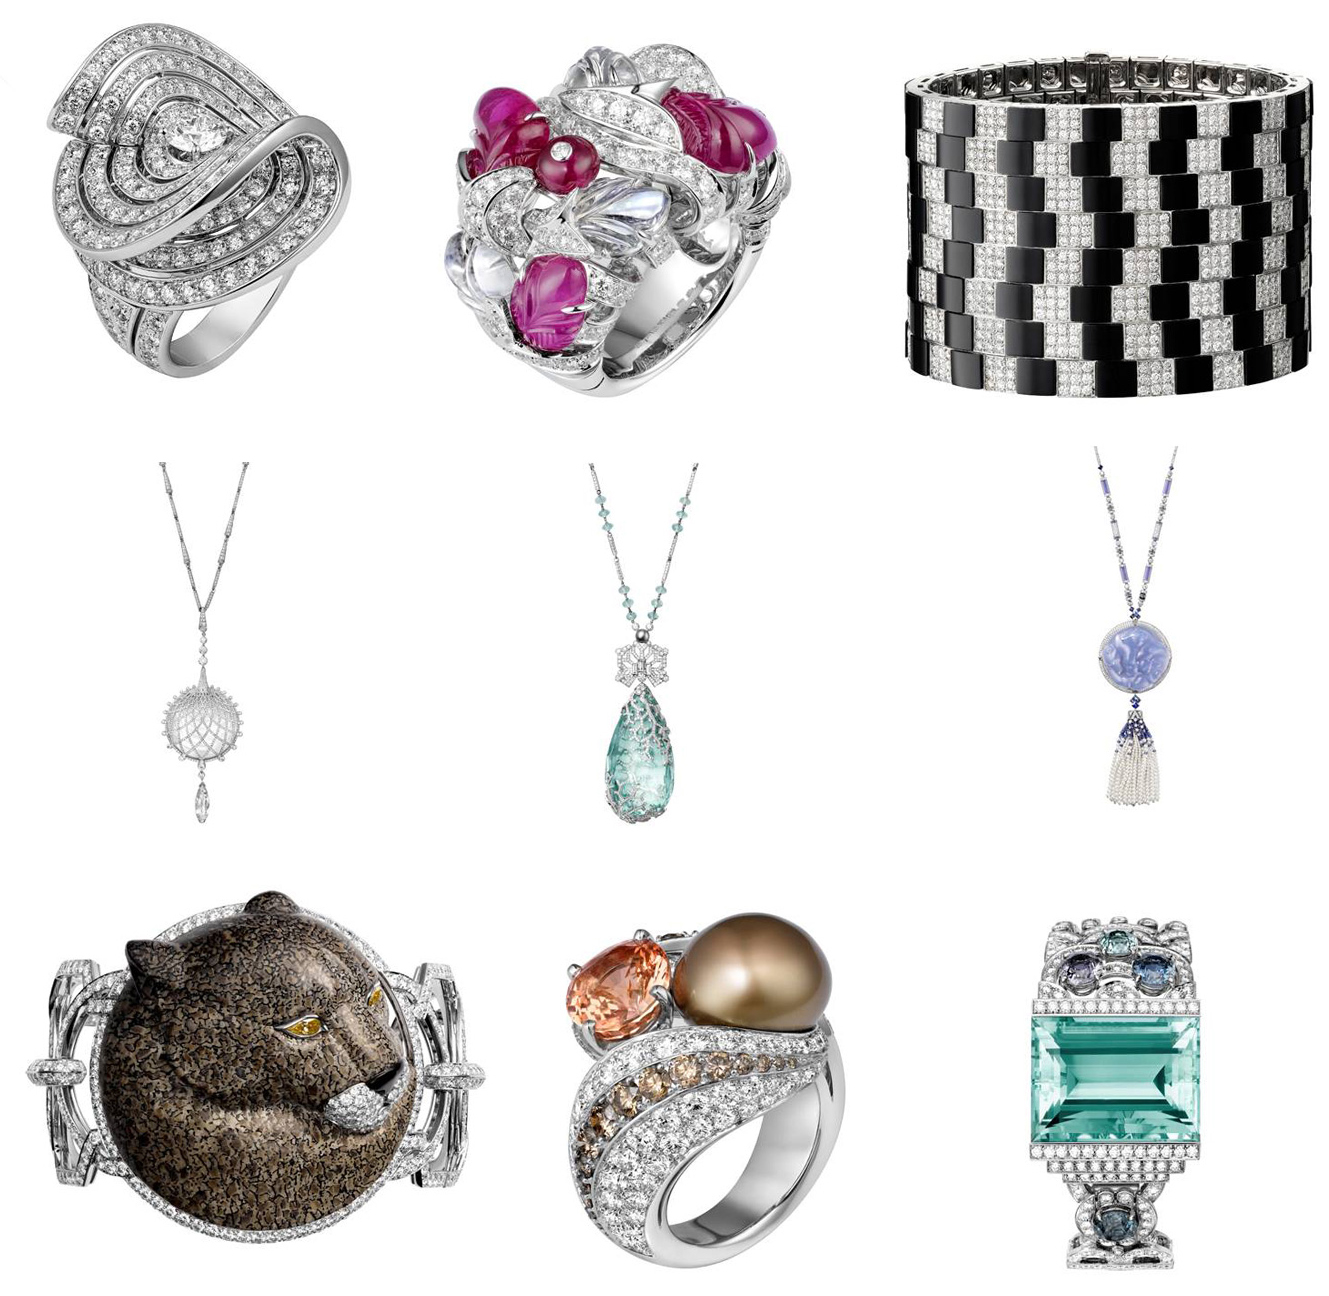 Take a look at all jewelry collections Cartier created: rings, necklaces, bracelets.